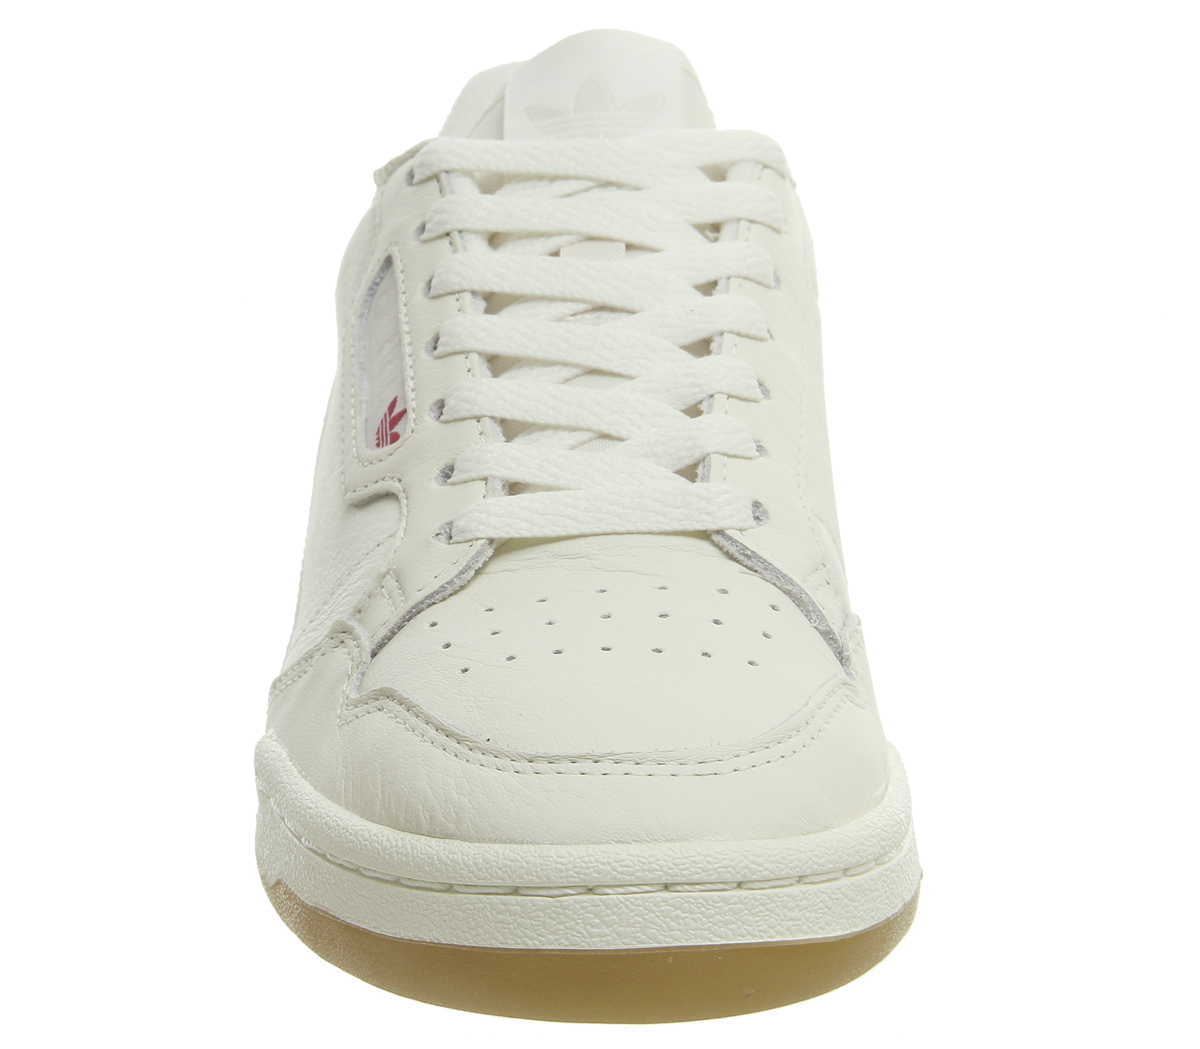 2c694073cba81a Adidas 80S Continental Trainers Off White Raw White Gum Shoes